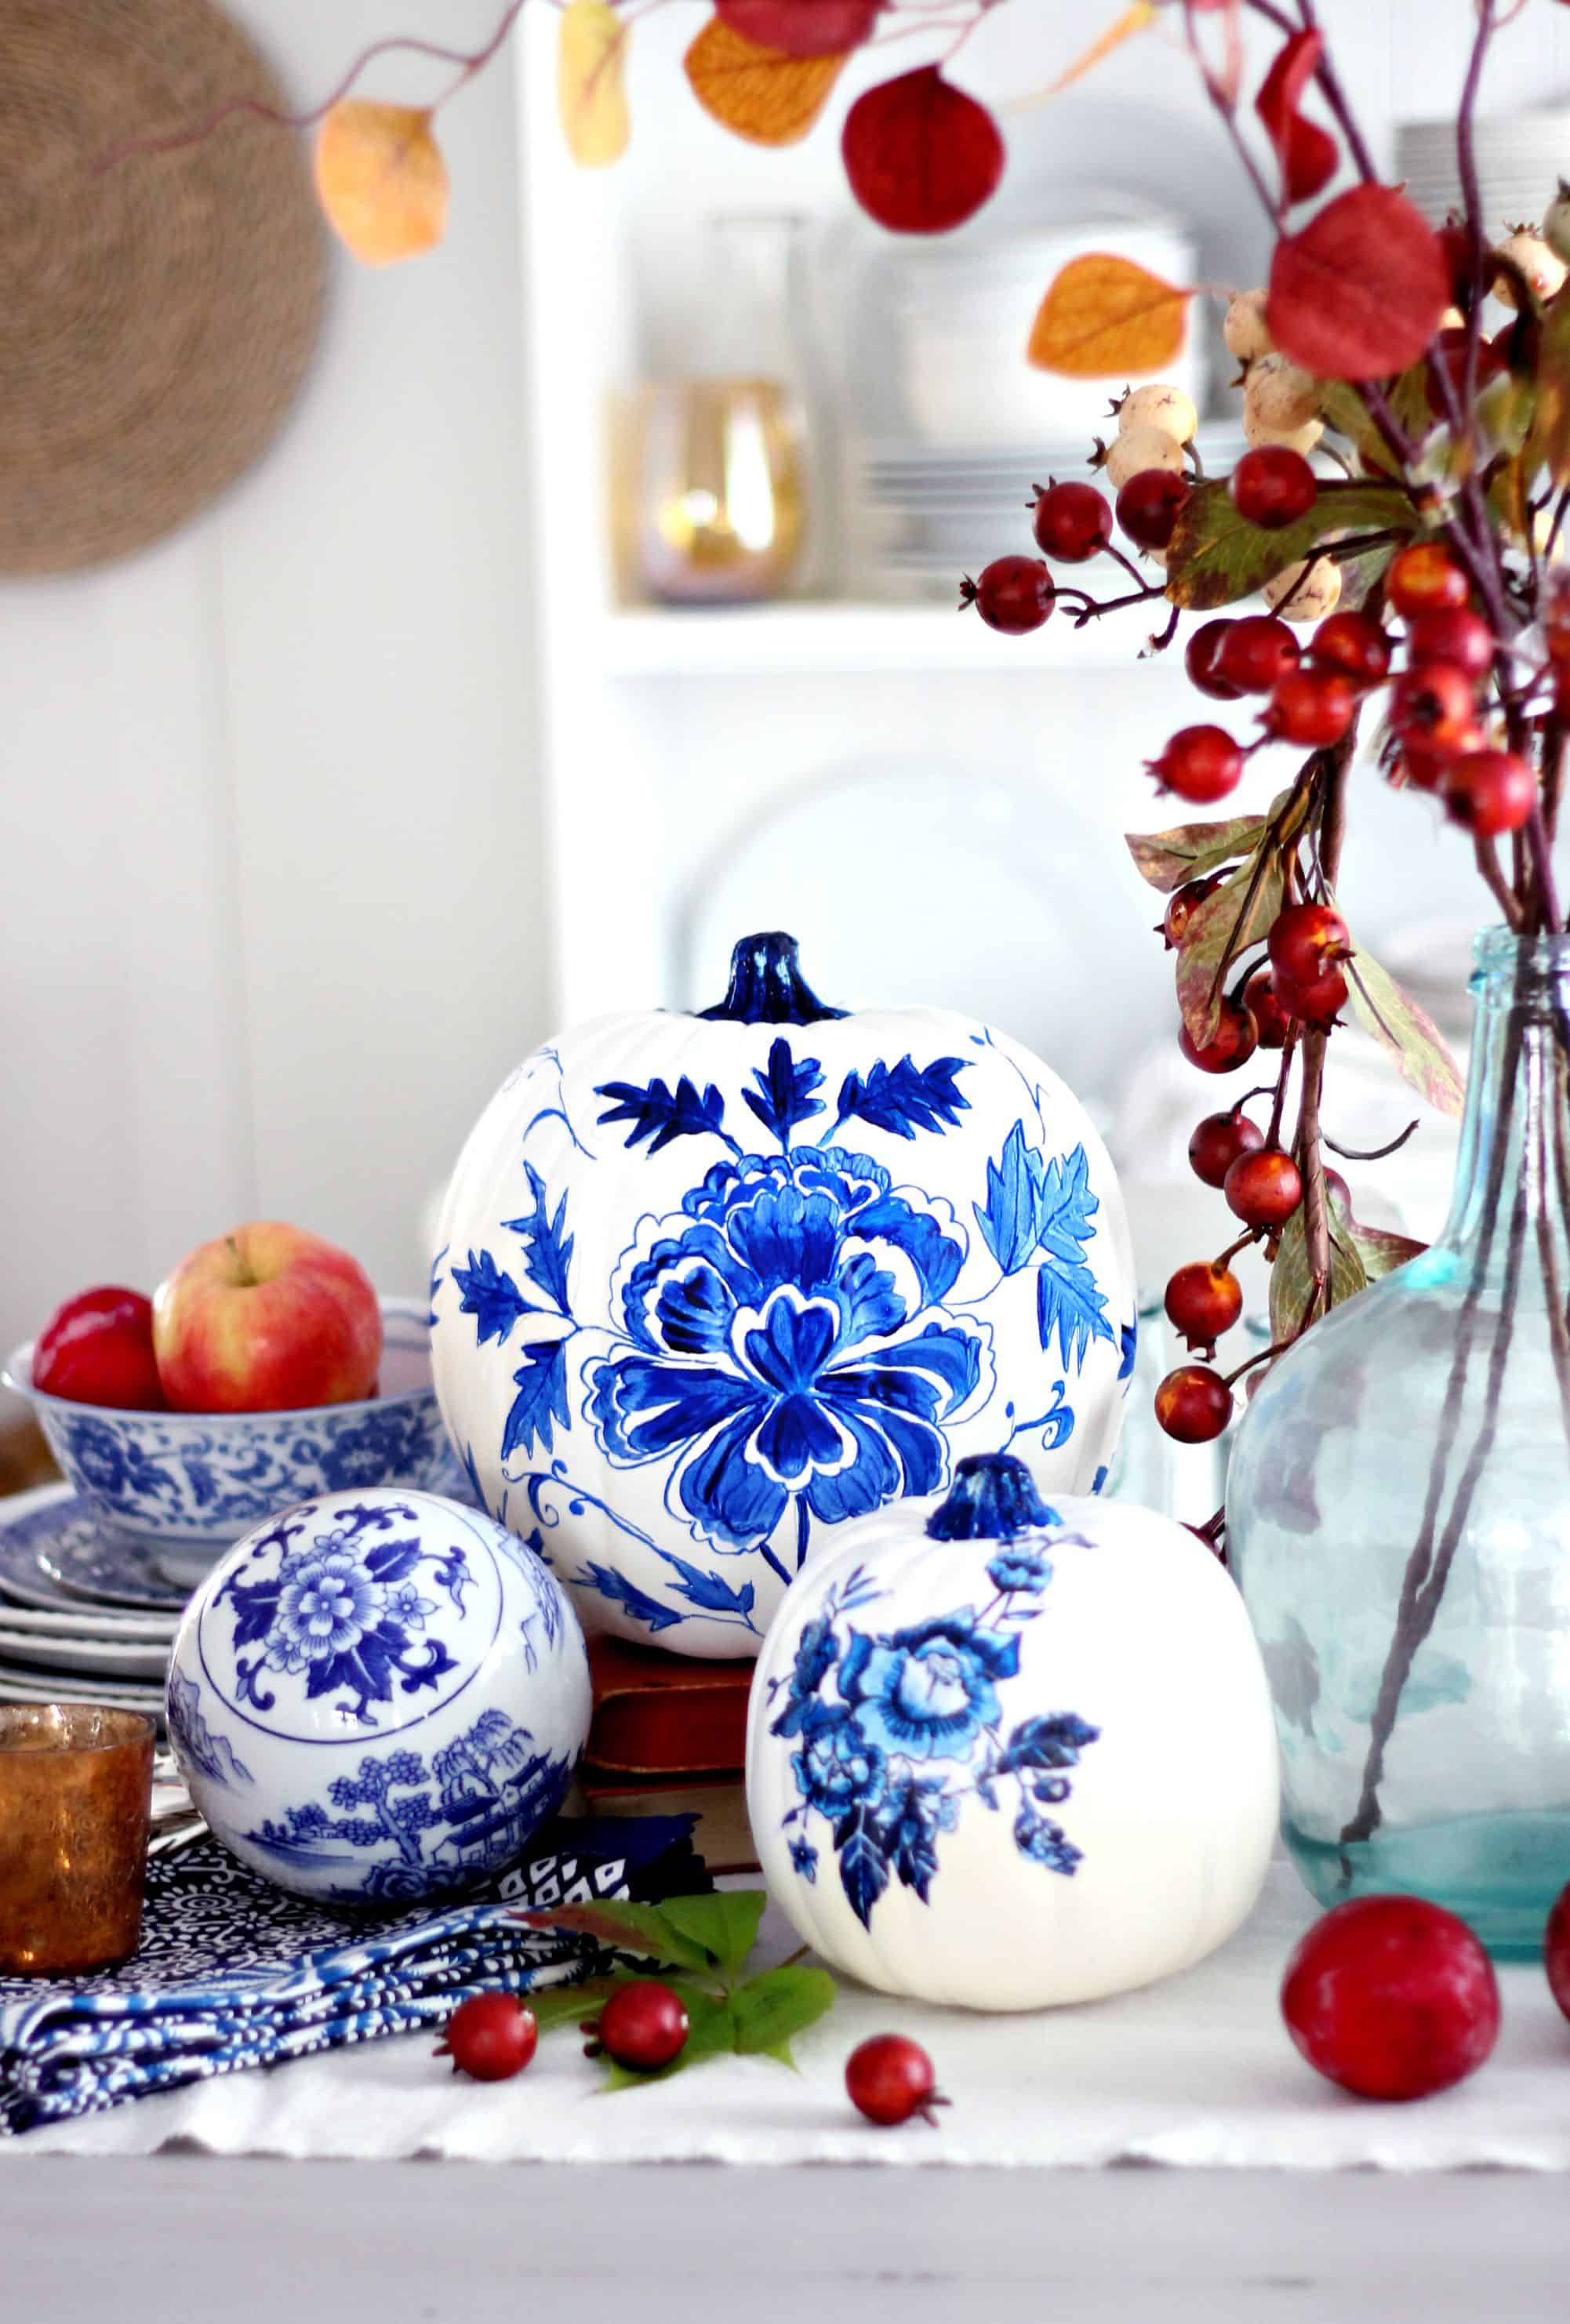 Grabbing some inspiration from your favorite porcelain plates to create this elegant look